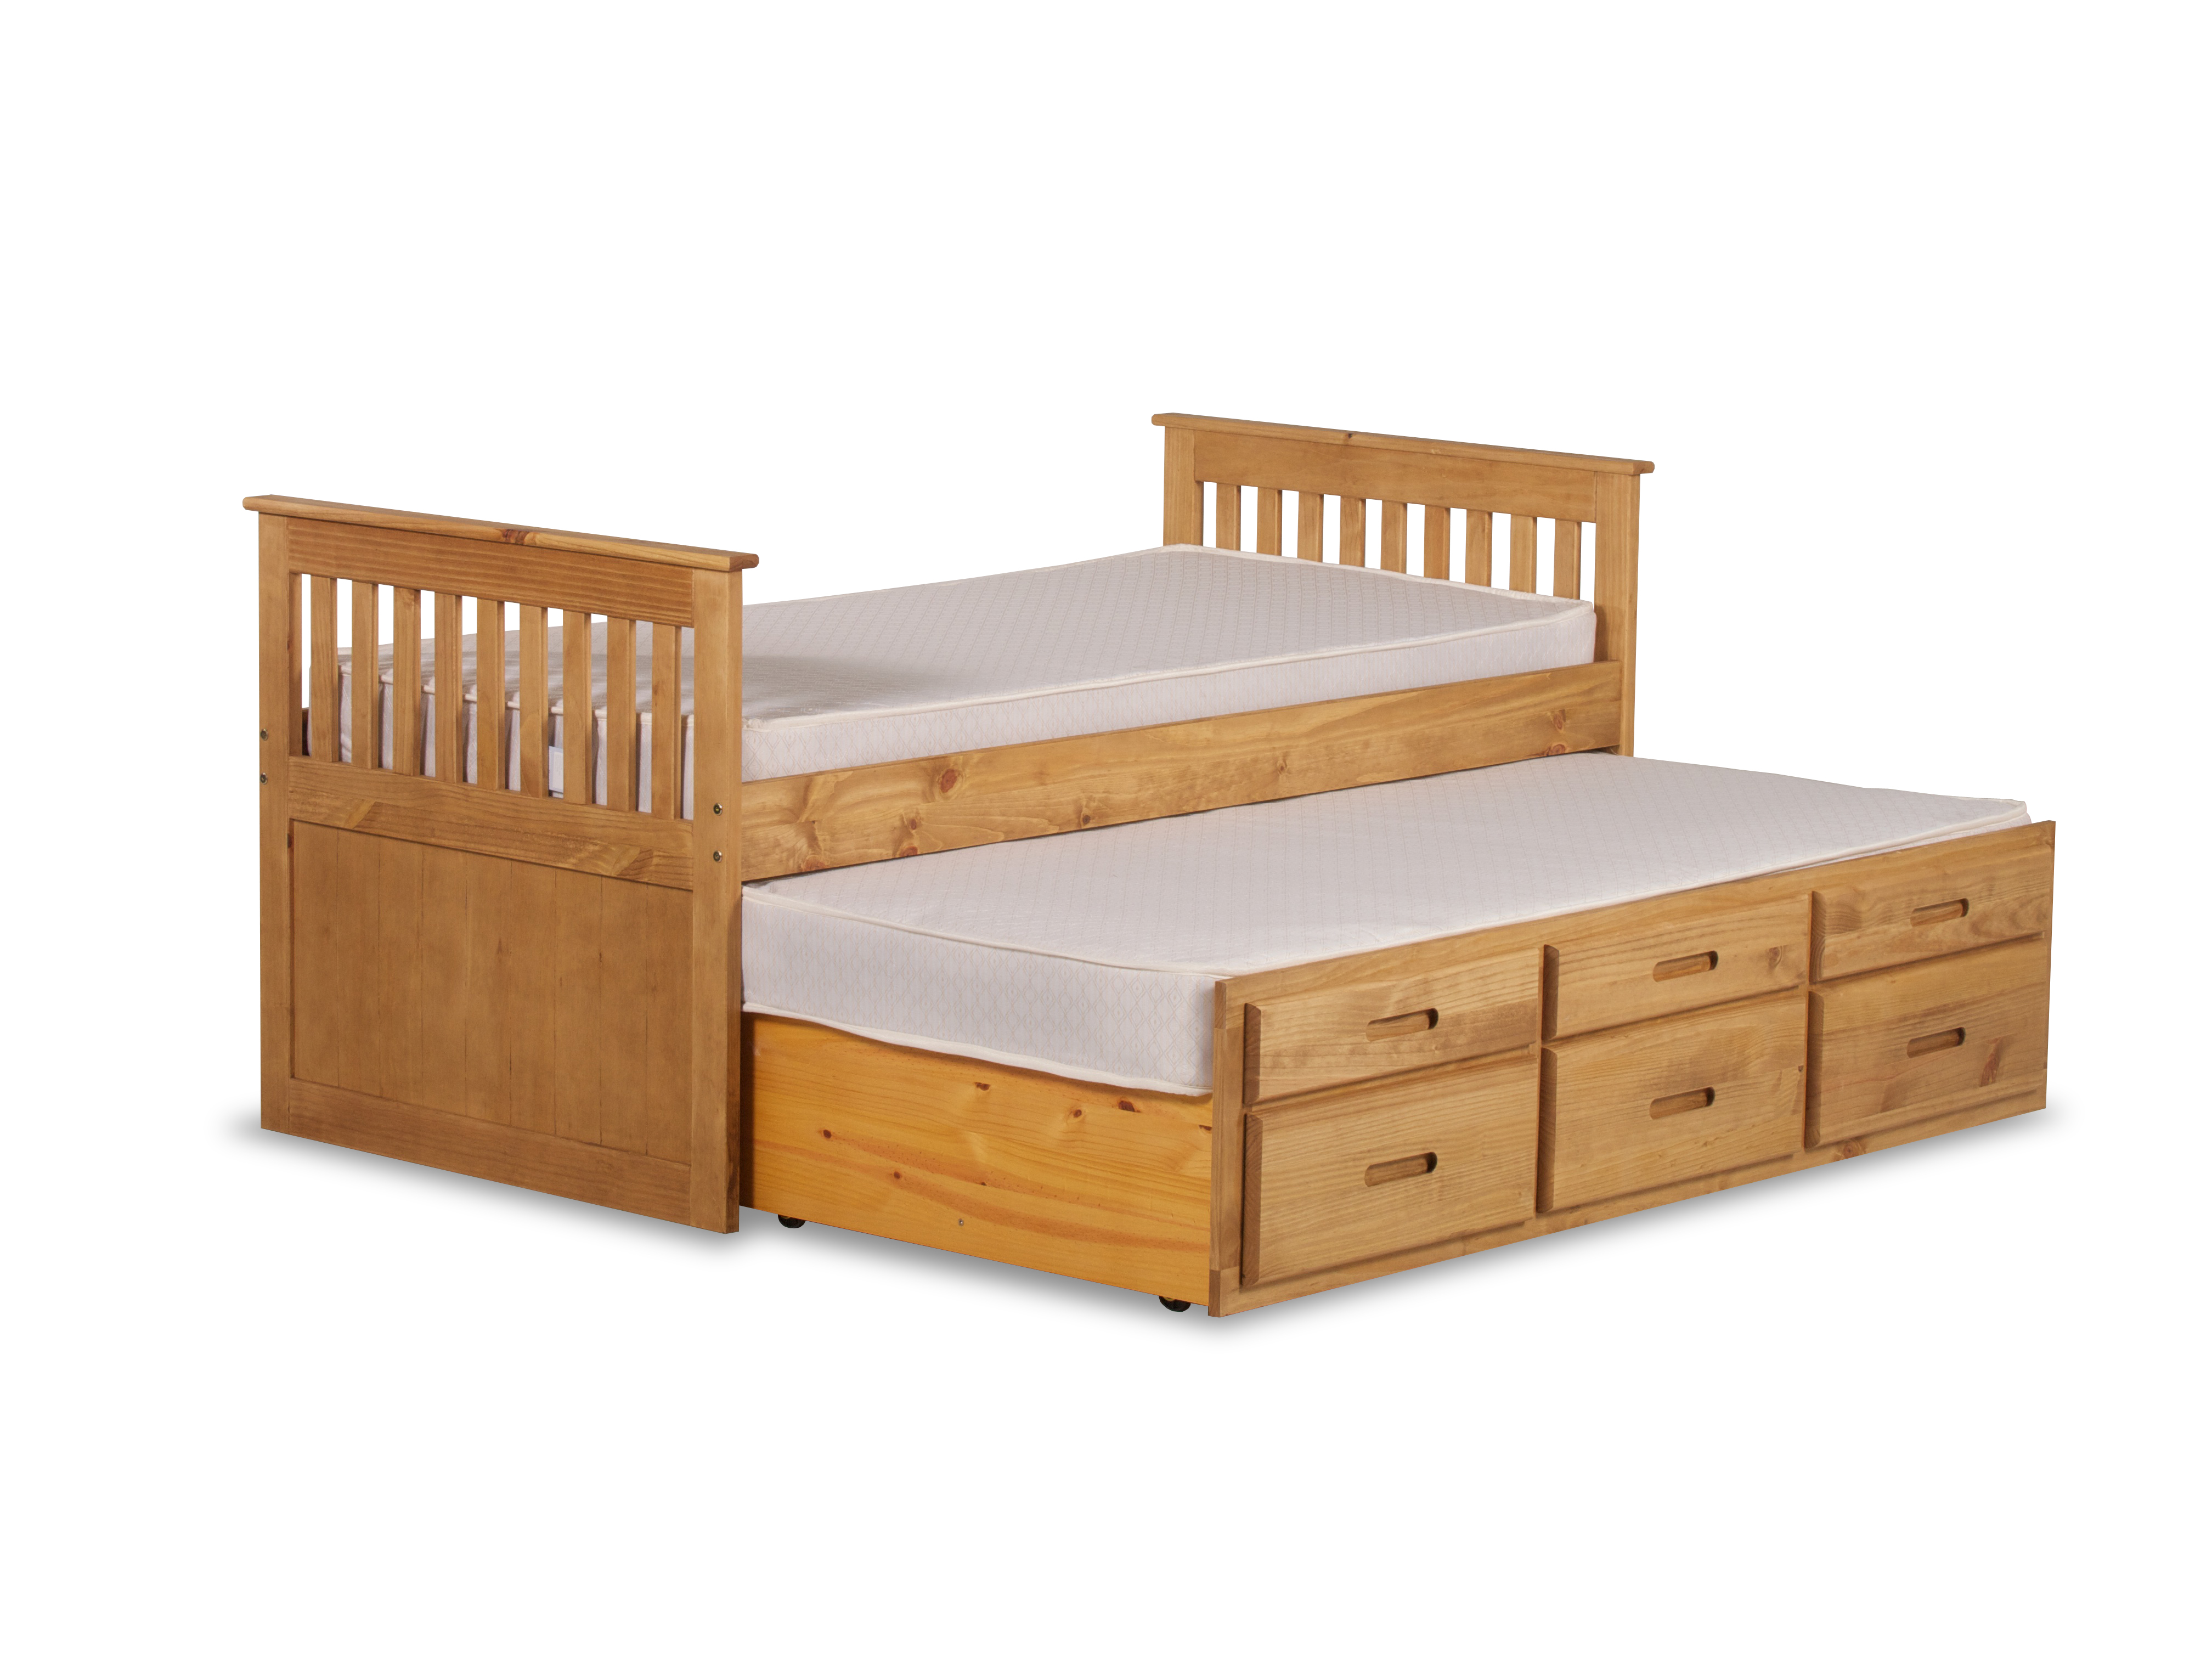 CAPTAINS UNDER-BED IN WAXED PINE